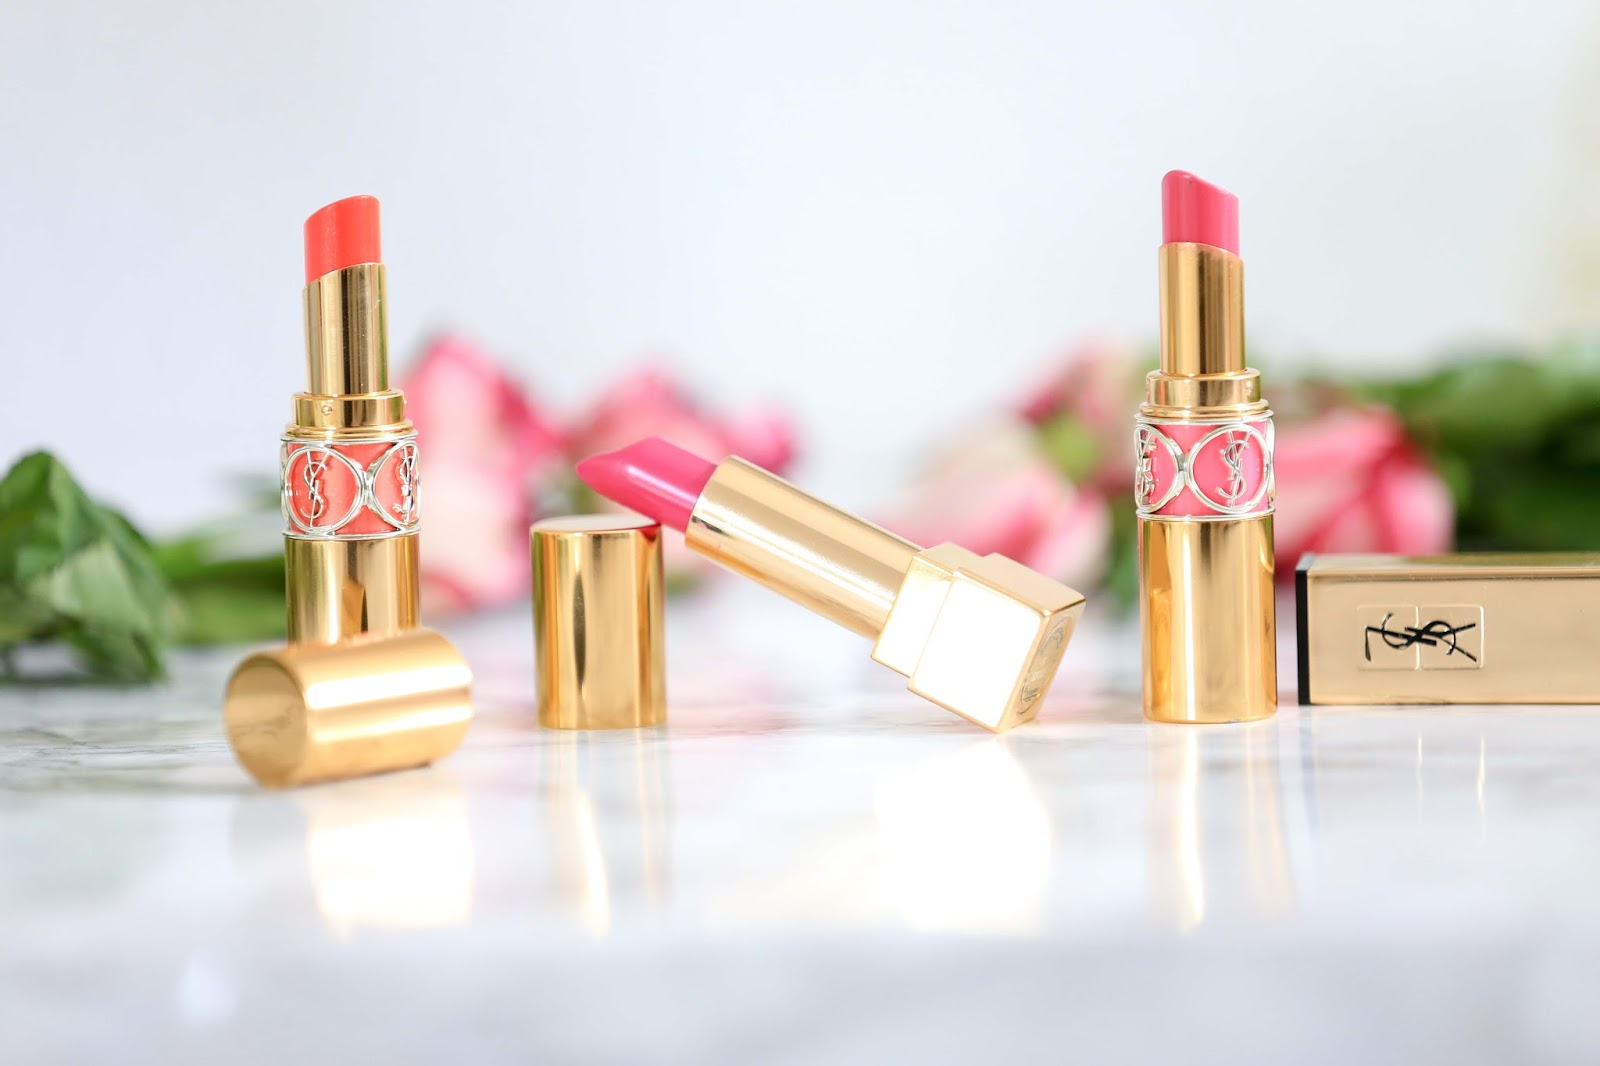 Welches Perfume richt gut-Frauen Perfume-was tragen Blogger im Winter-Duft der Blogger-Beautypost-Beautyblogger-Blogger aus Frankfurt -YSL-YSL Lippenstift- pinker Lippenstift-Pinkpeonies Lippenstift-Lipstik